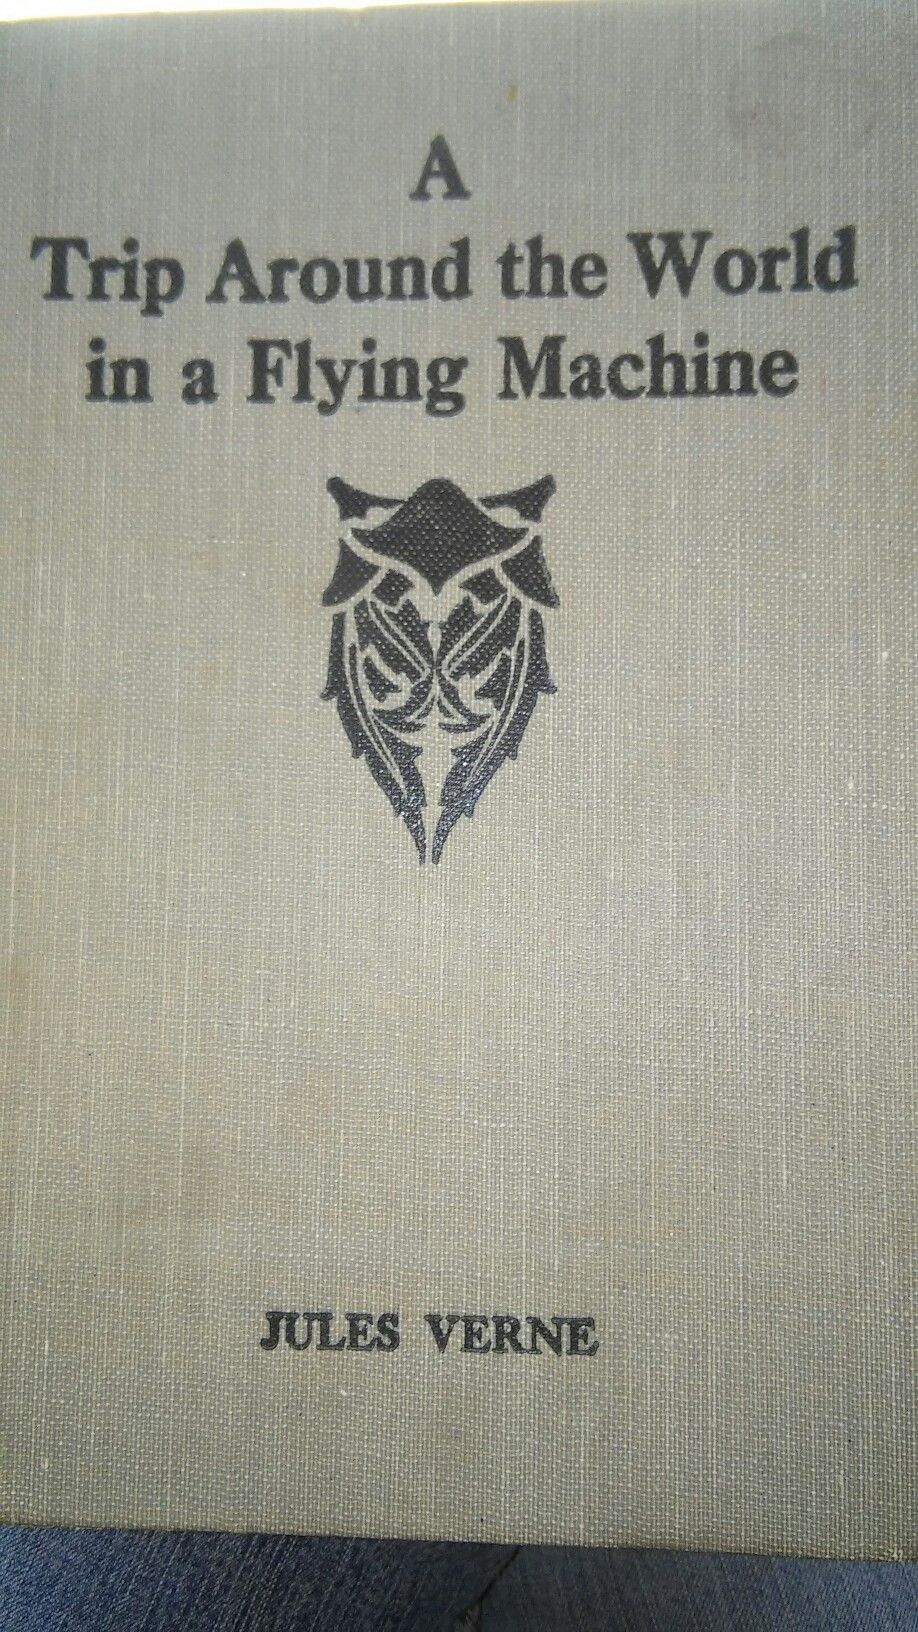 """""""A Trip Around the World in a Fling Machine"""" by Jules Vern, 1887 copyright,  make offer.  Serious buyers only! $80.00"""